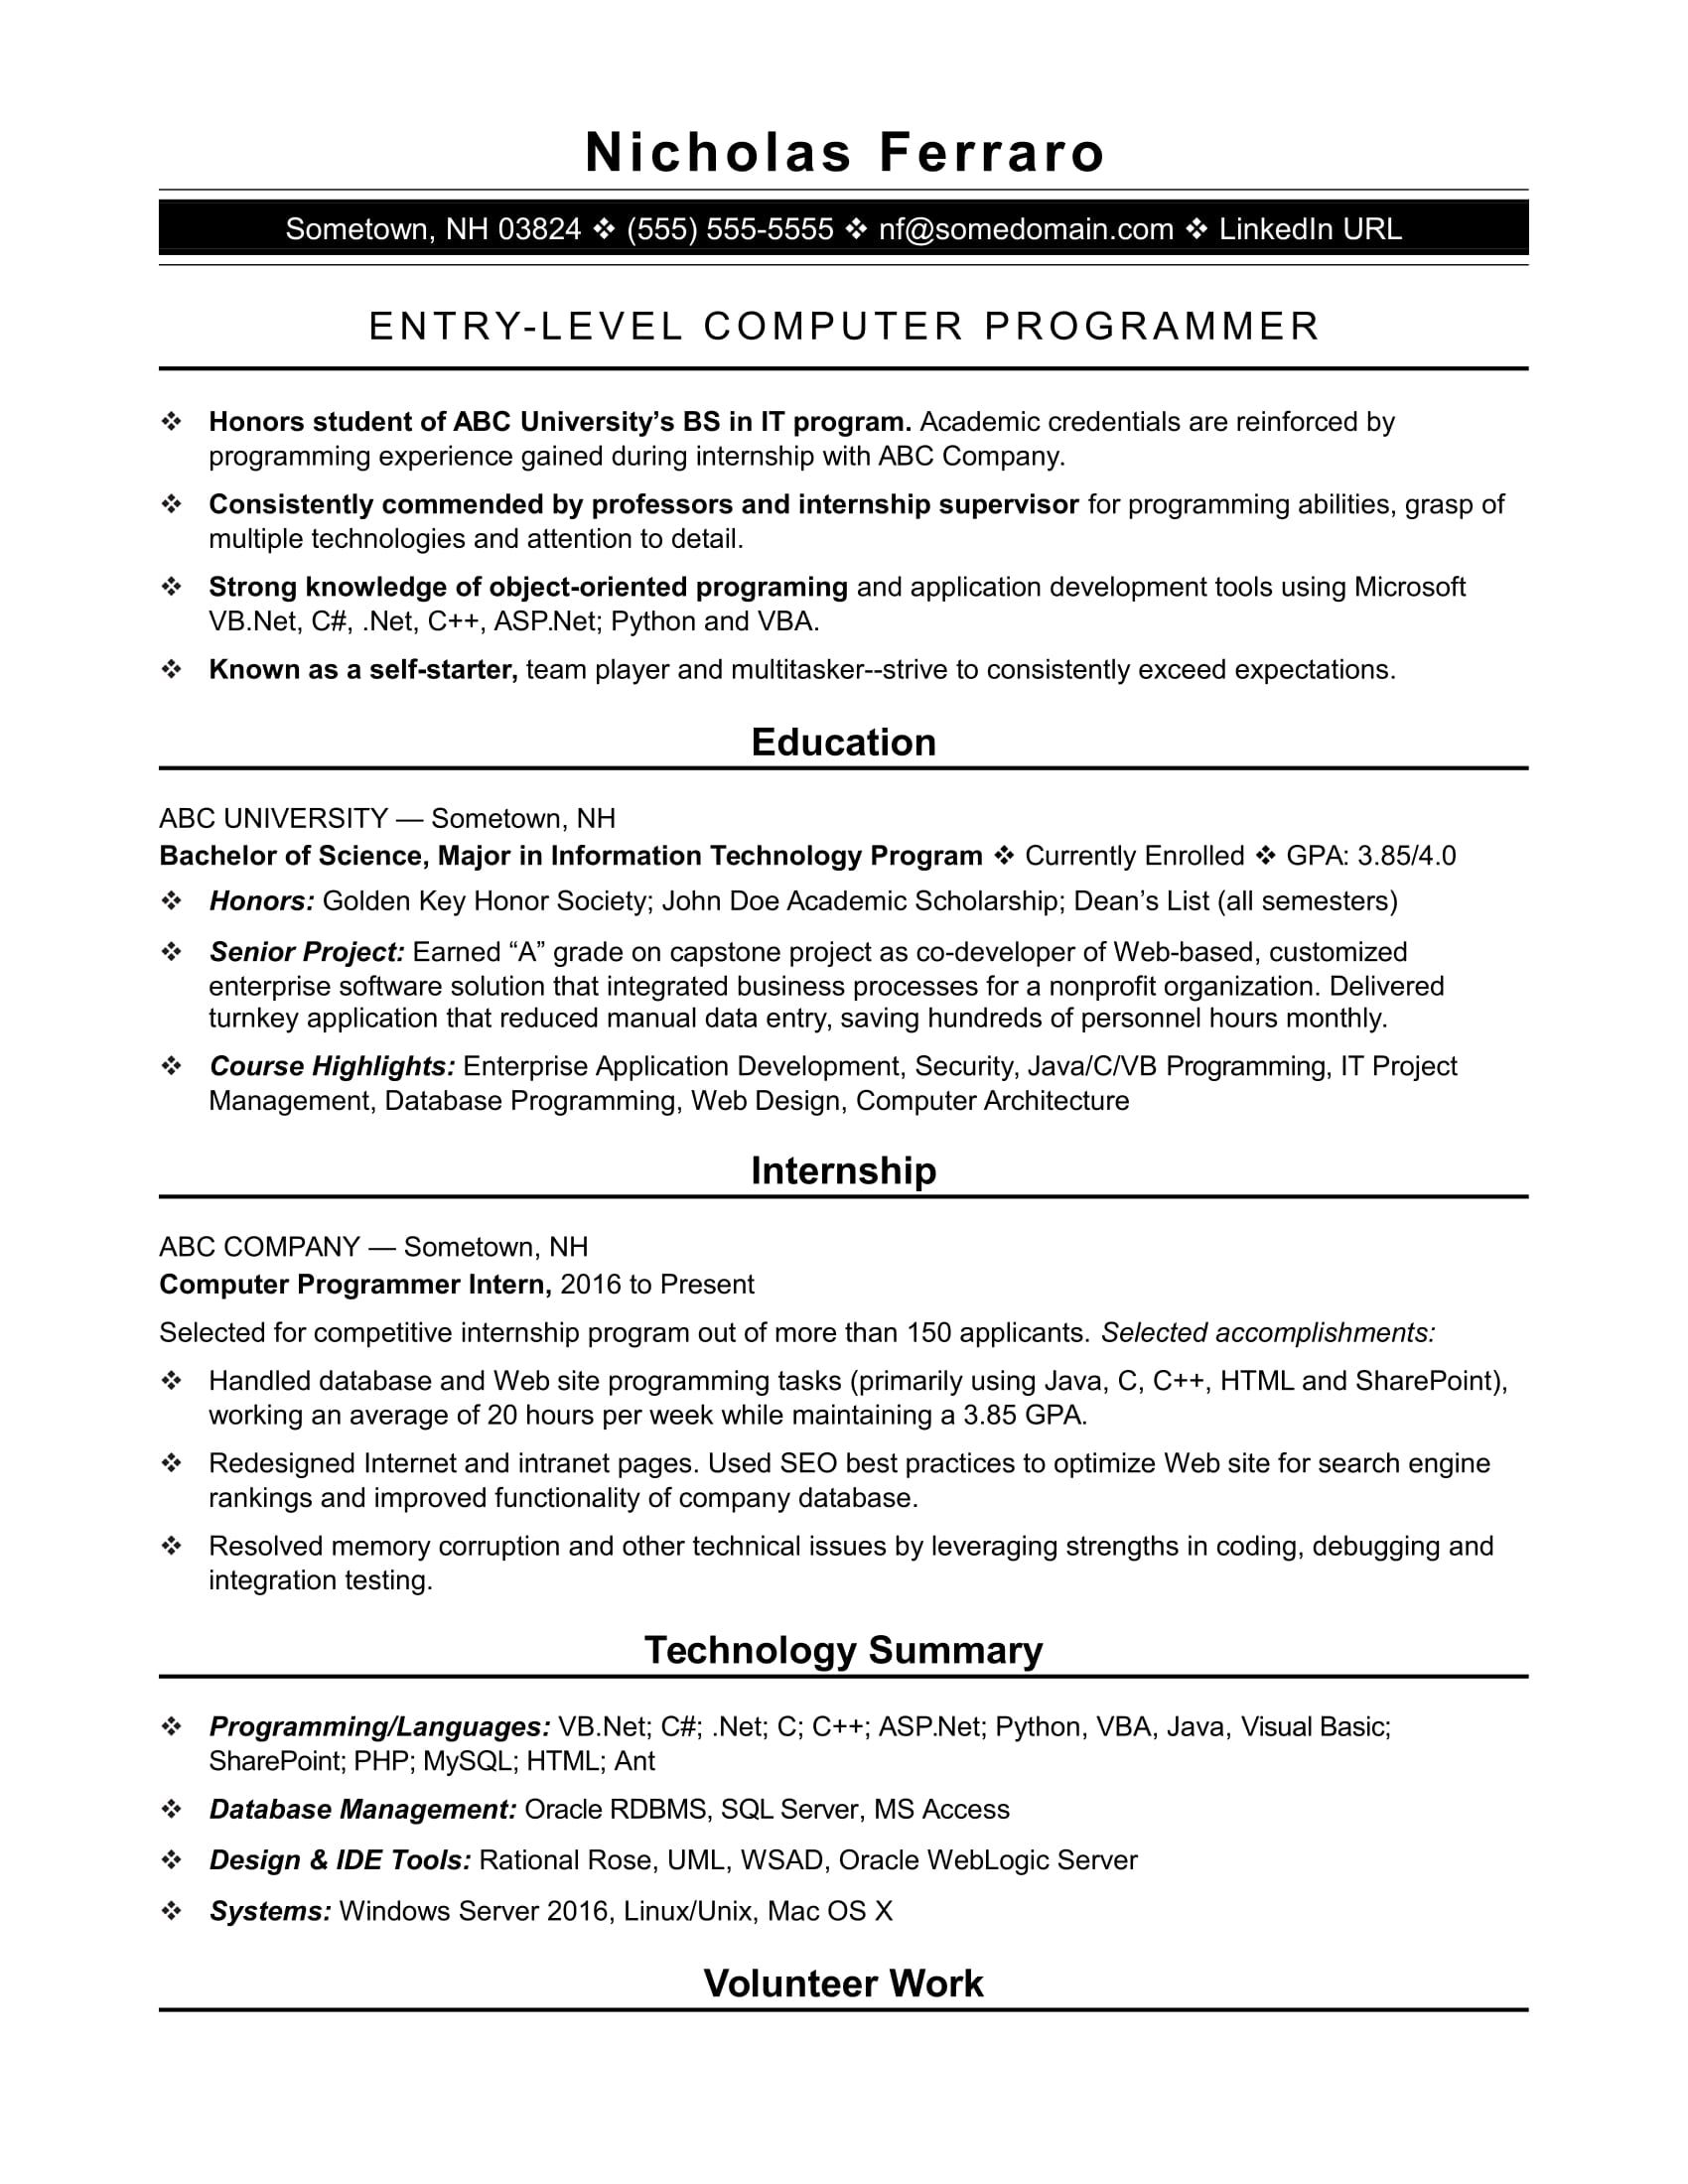 If you're a new IT graduate, check out this sample resume